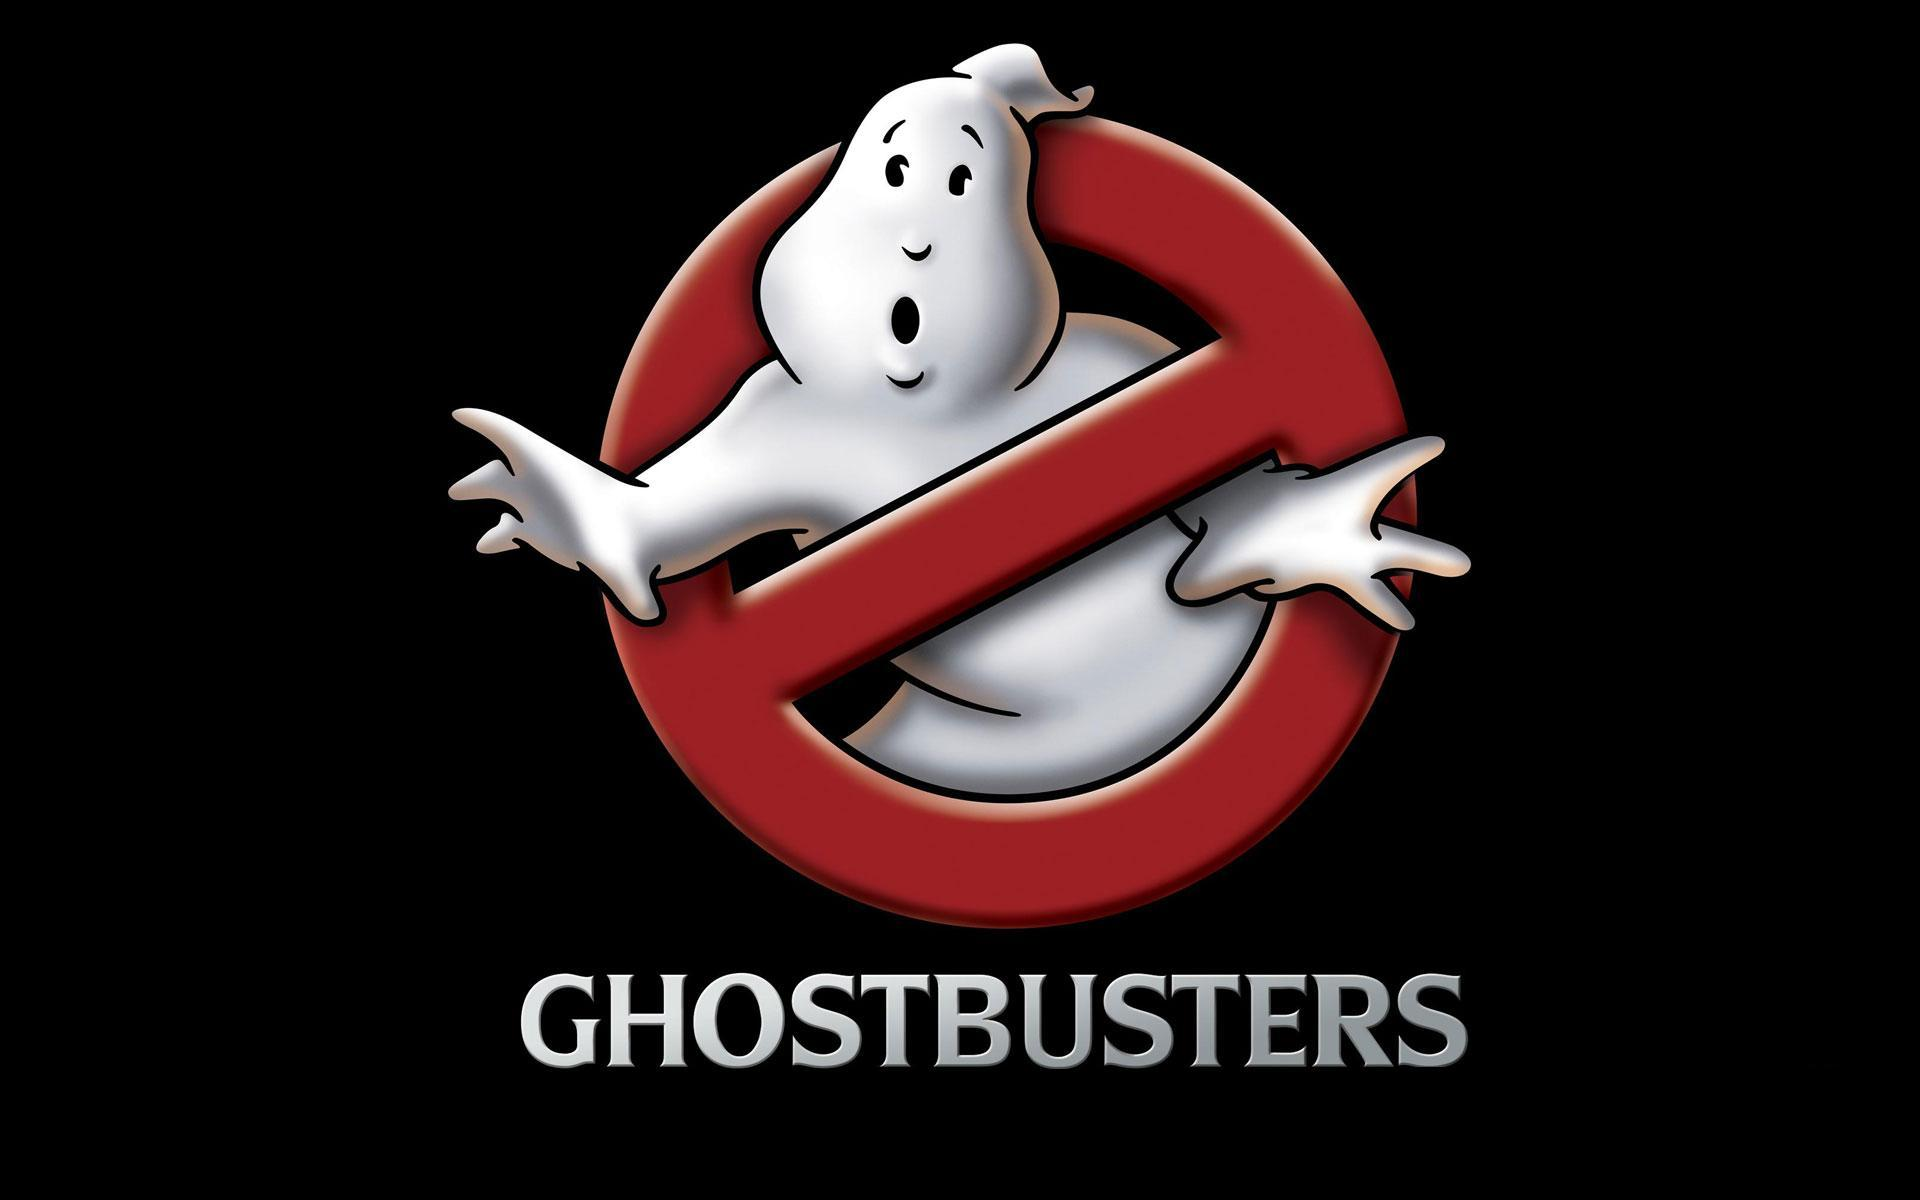 Ghostbusters computer wallpapers desktop backgrounds - Ghostbusters wallpaper ...